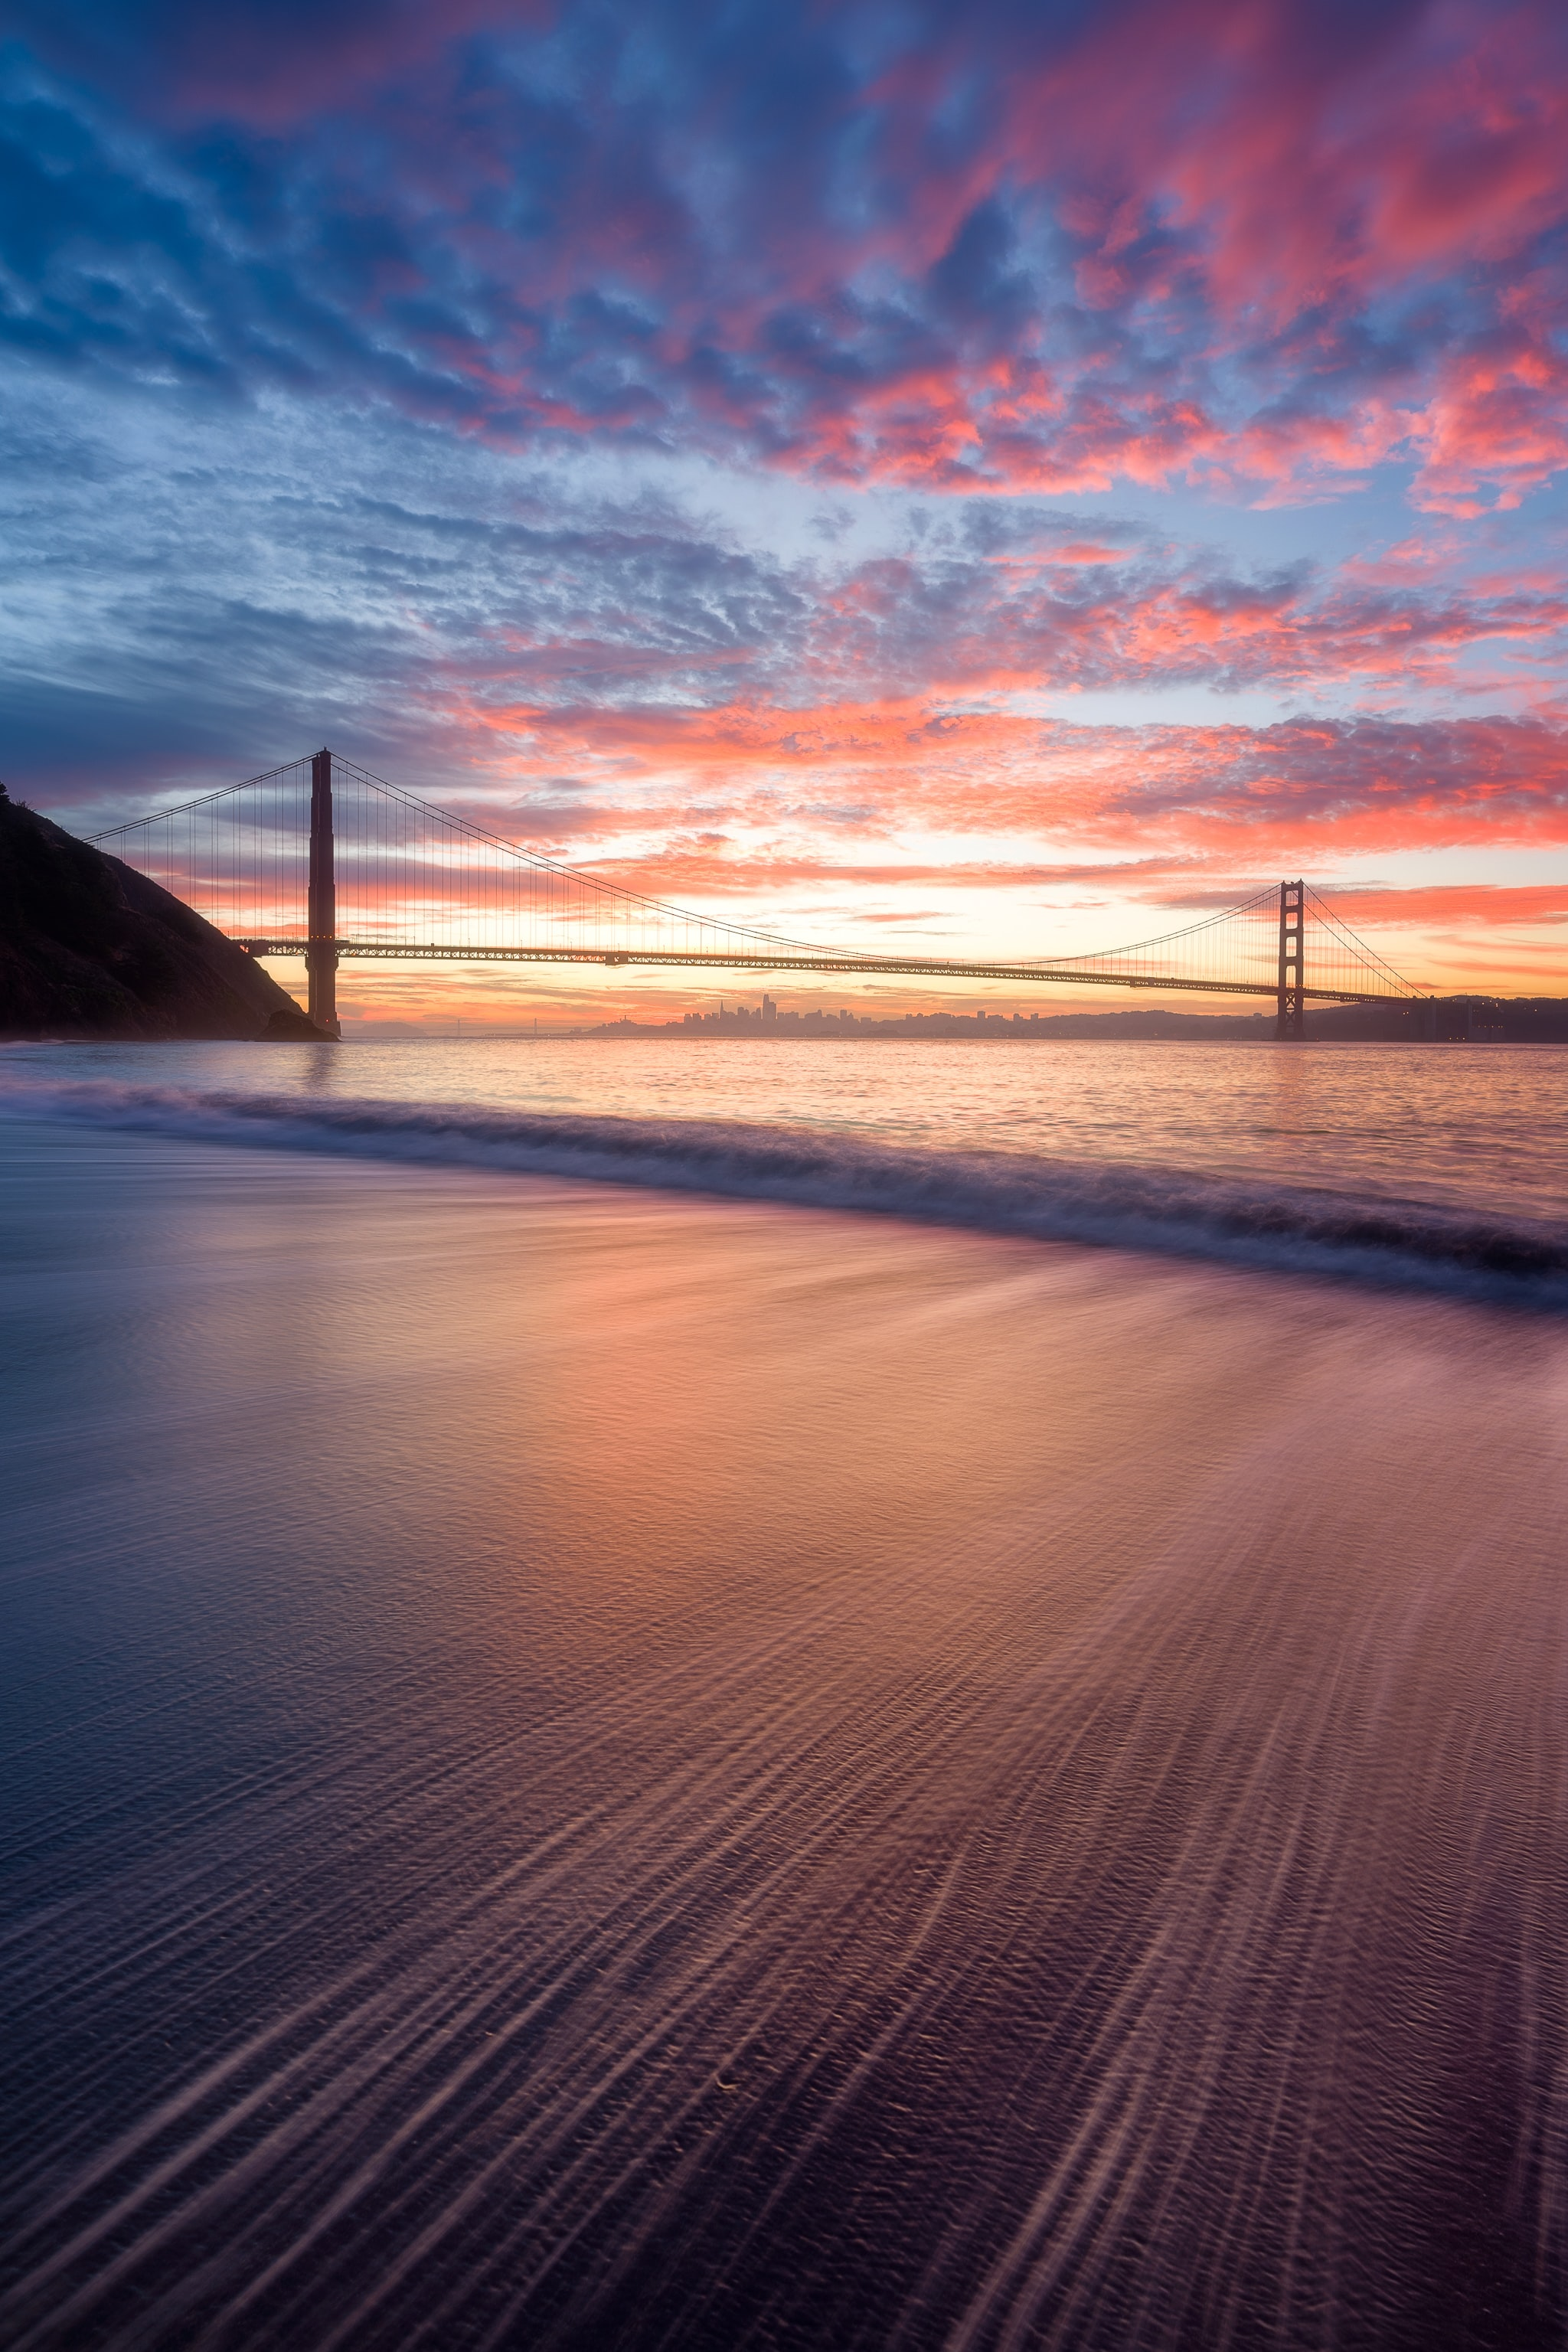 Golden Gate Bridge, San Francisco during golden hour